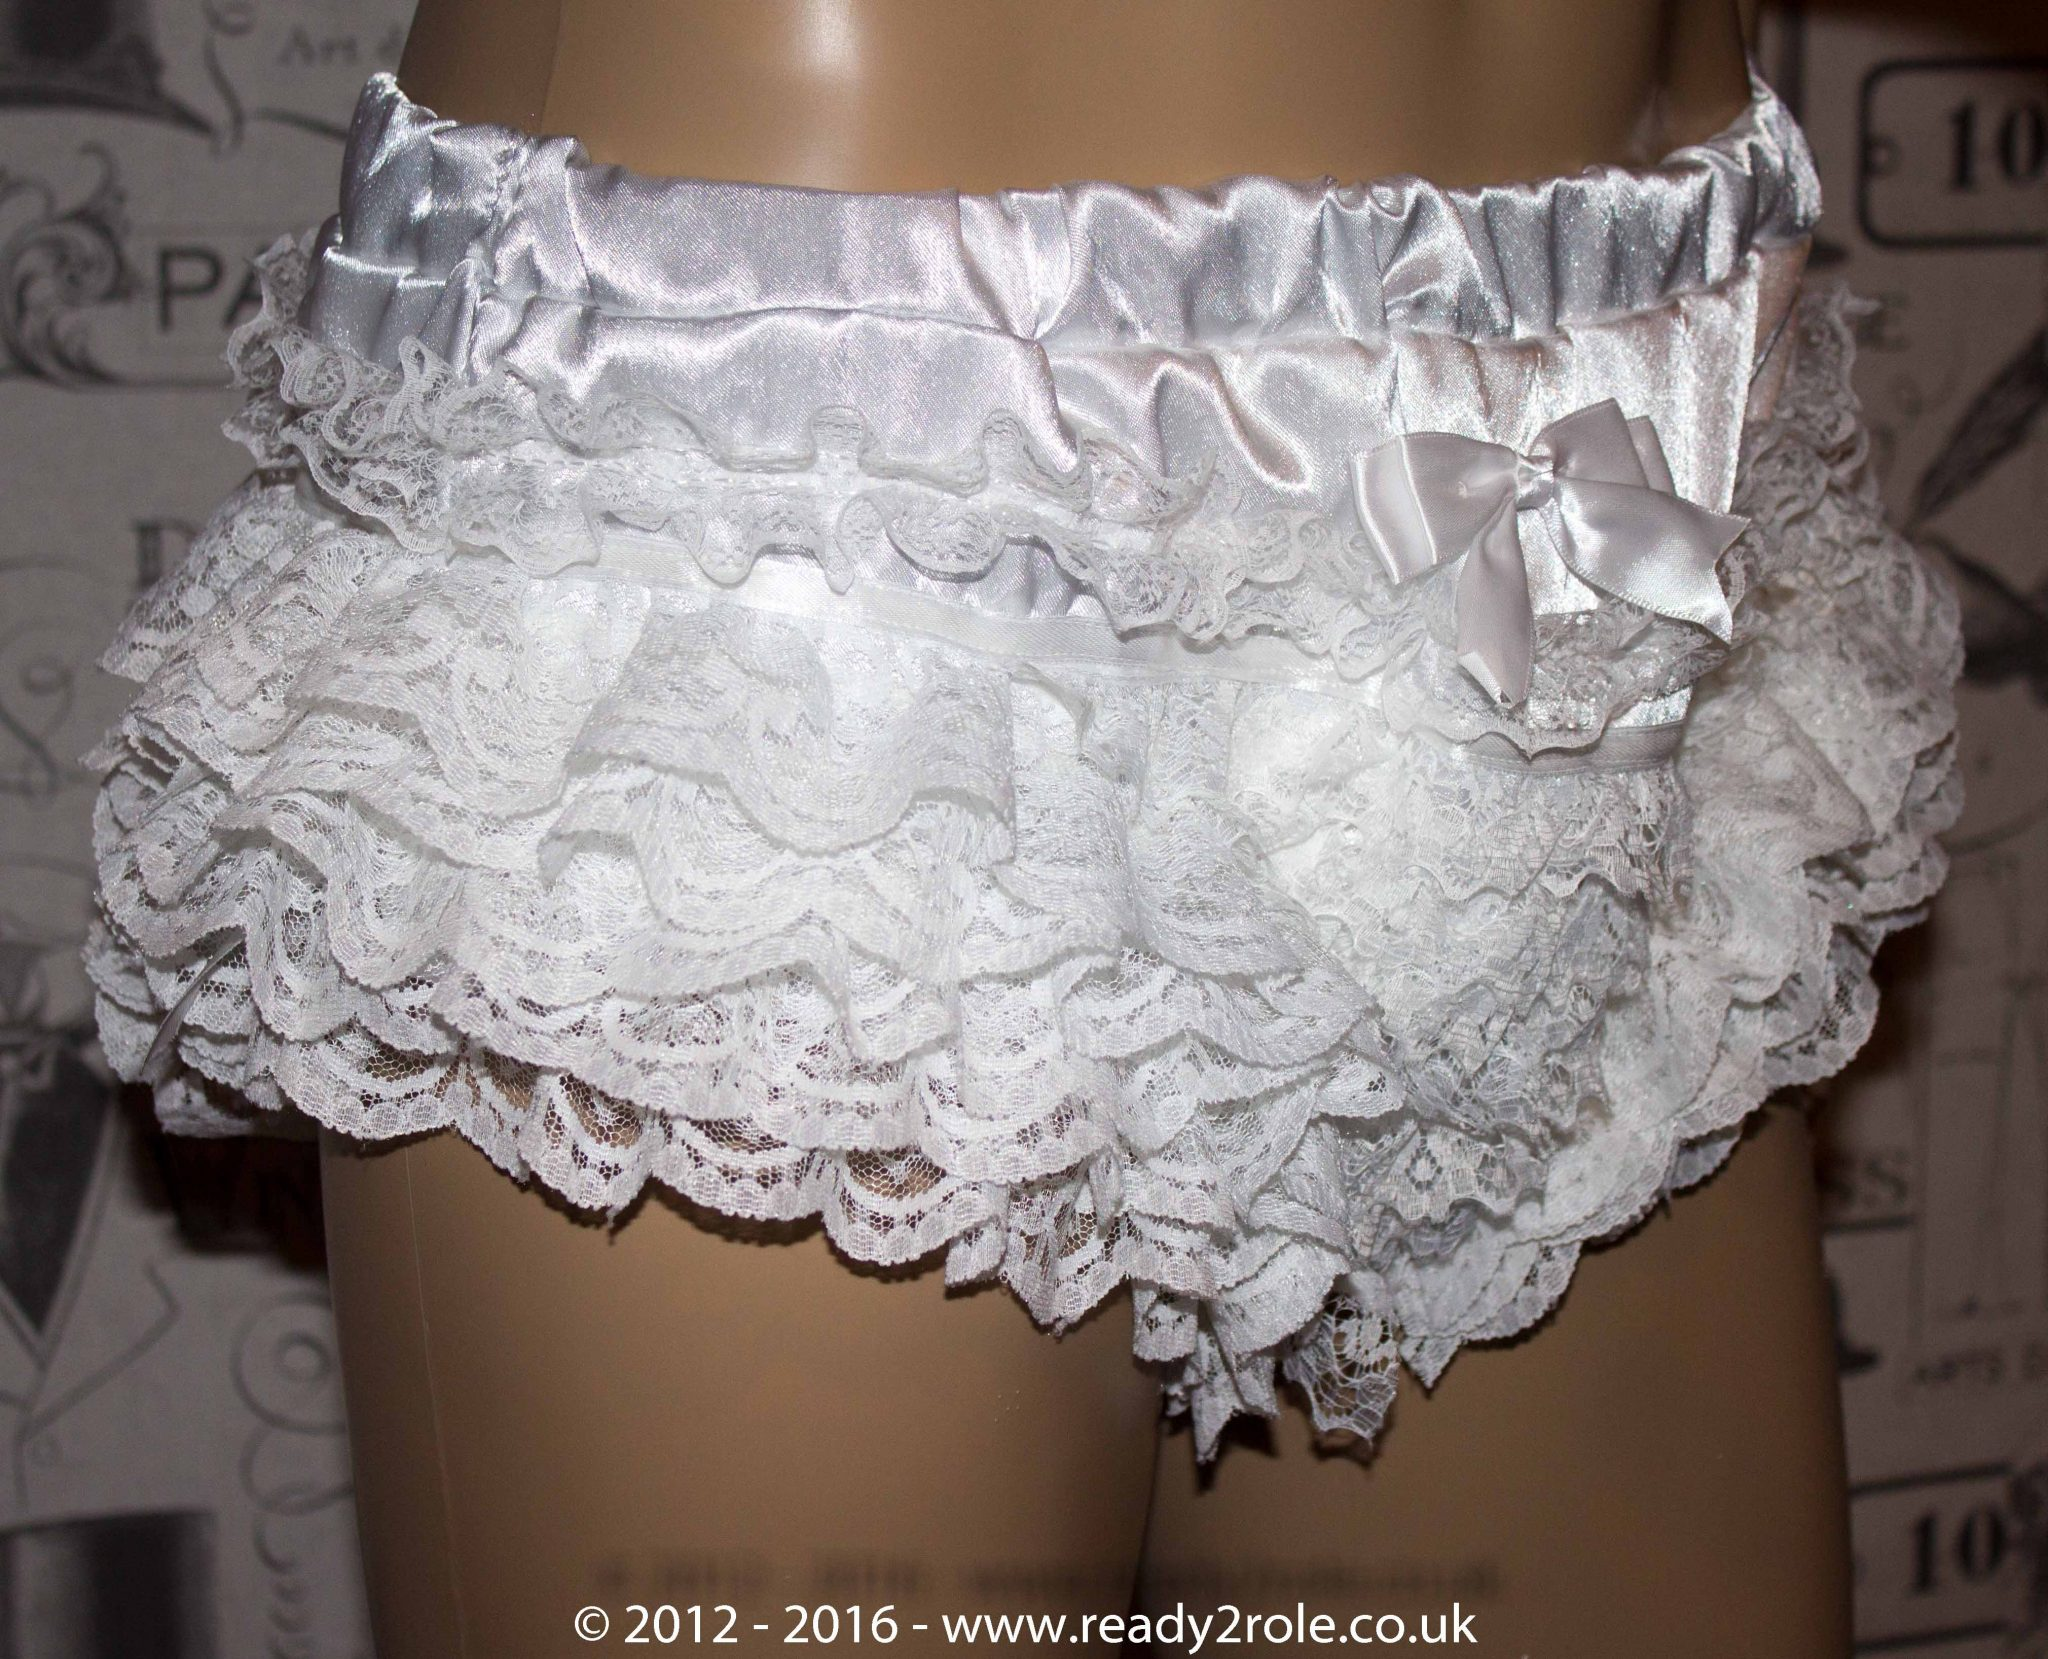 Sissy Satin Panties – The Sophie Style – Ask About Colour Options